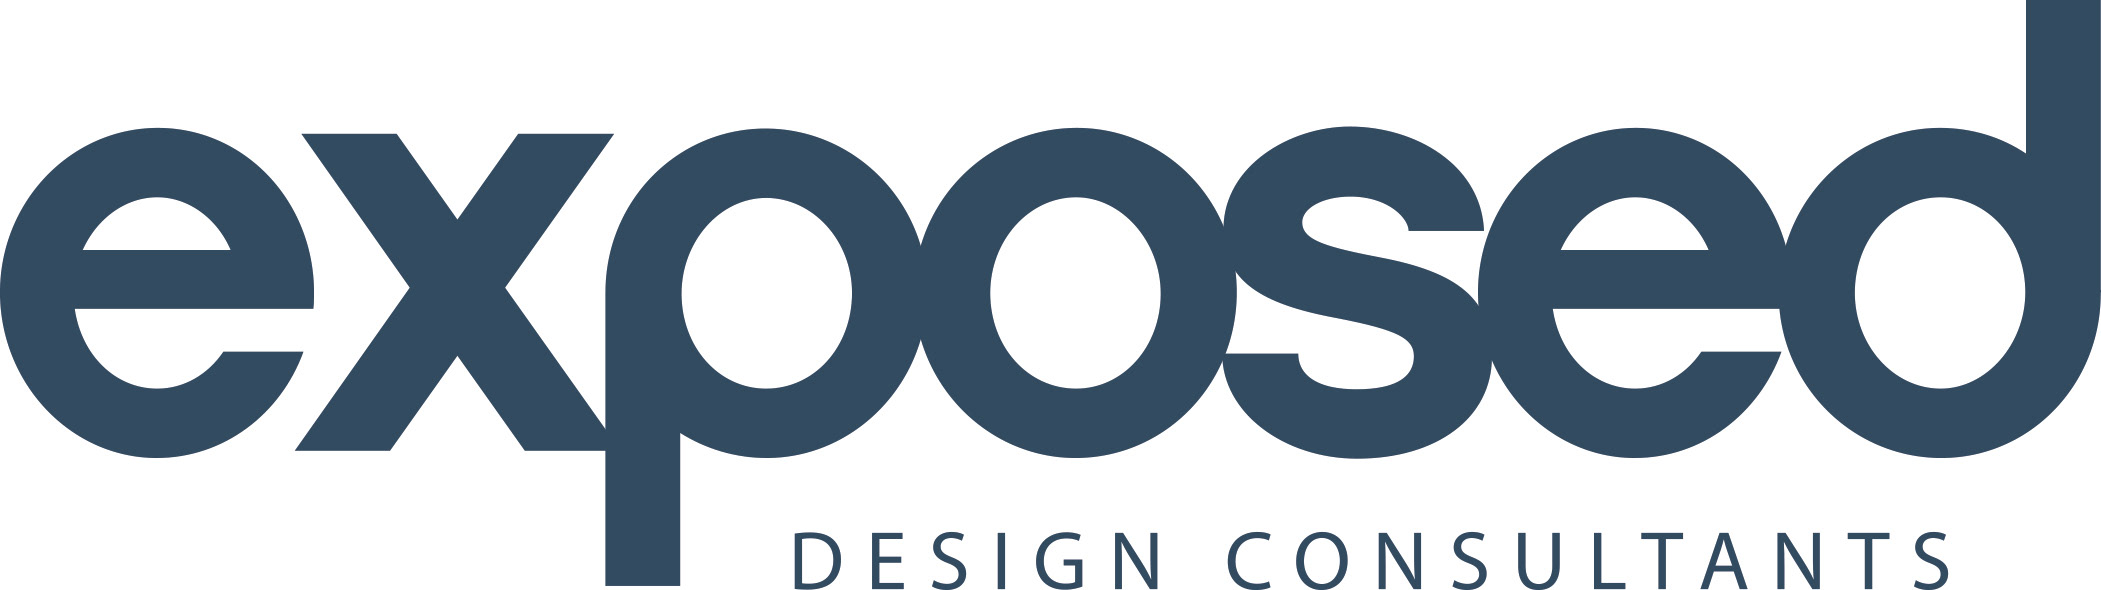 Exposed Design Consultants - Graphic Designers London